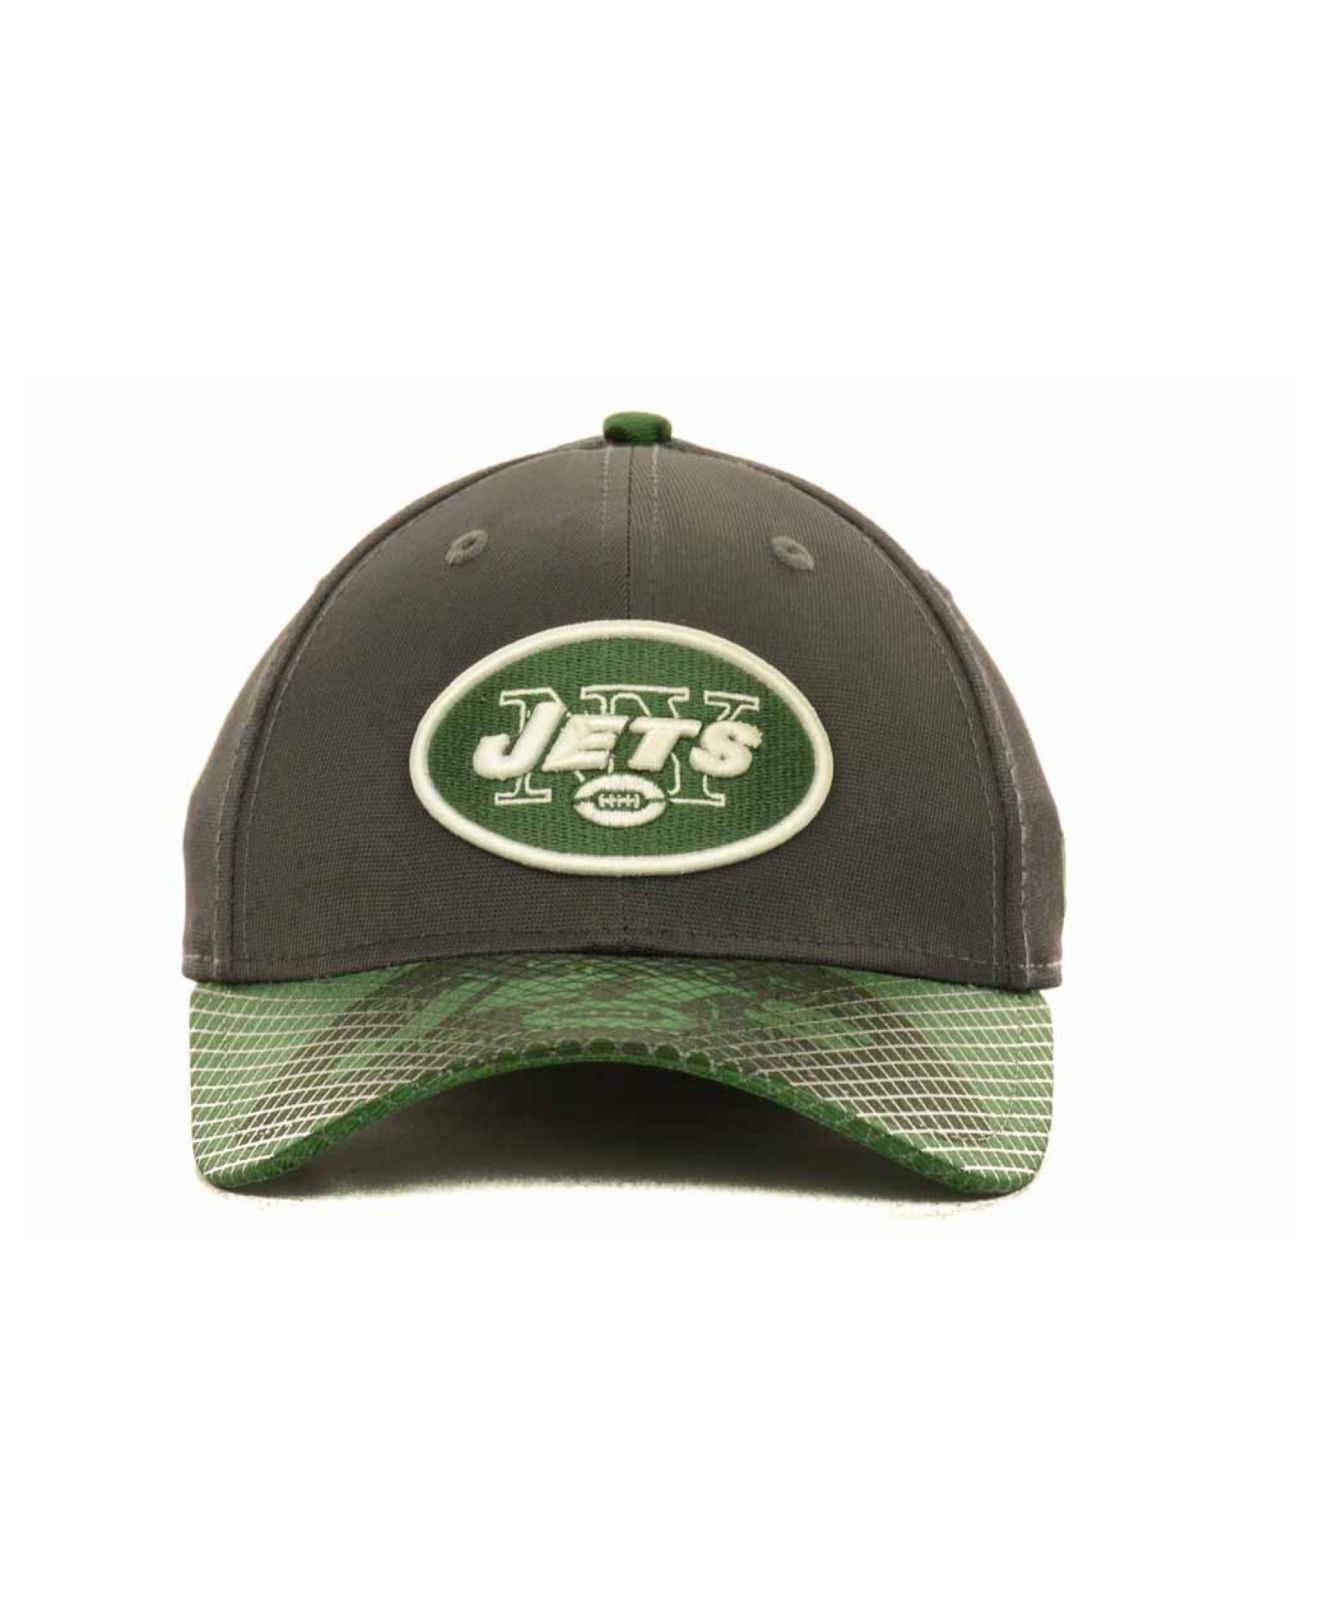 quality design b7878 57ece ... coupon lyst ktz new york jets 39thirty cap in green for men 21e2f 15e3b